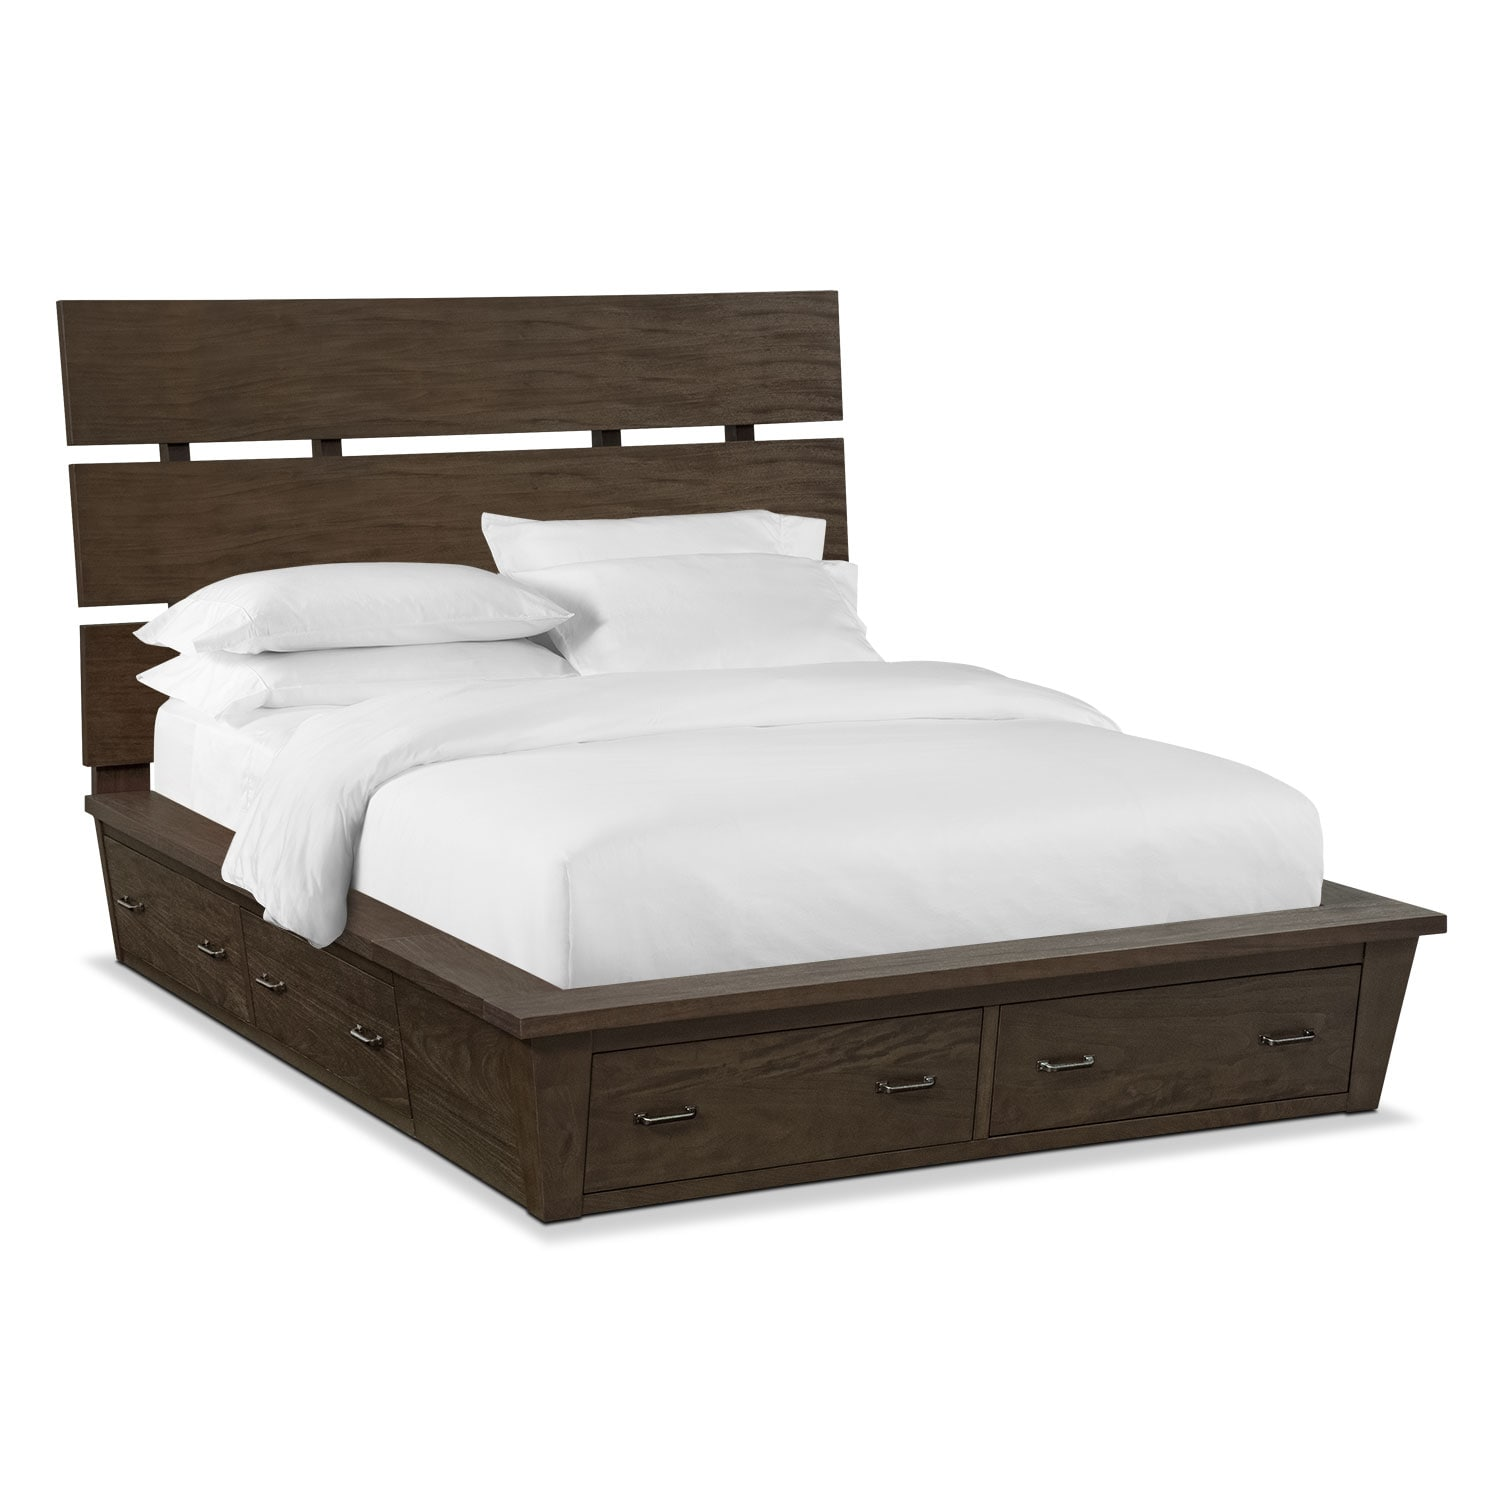 Camryn King Storage Bed - Cocoa